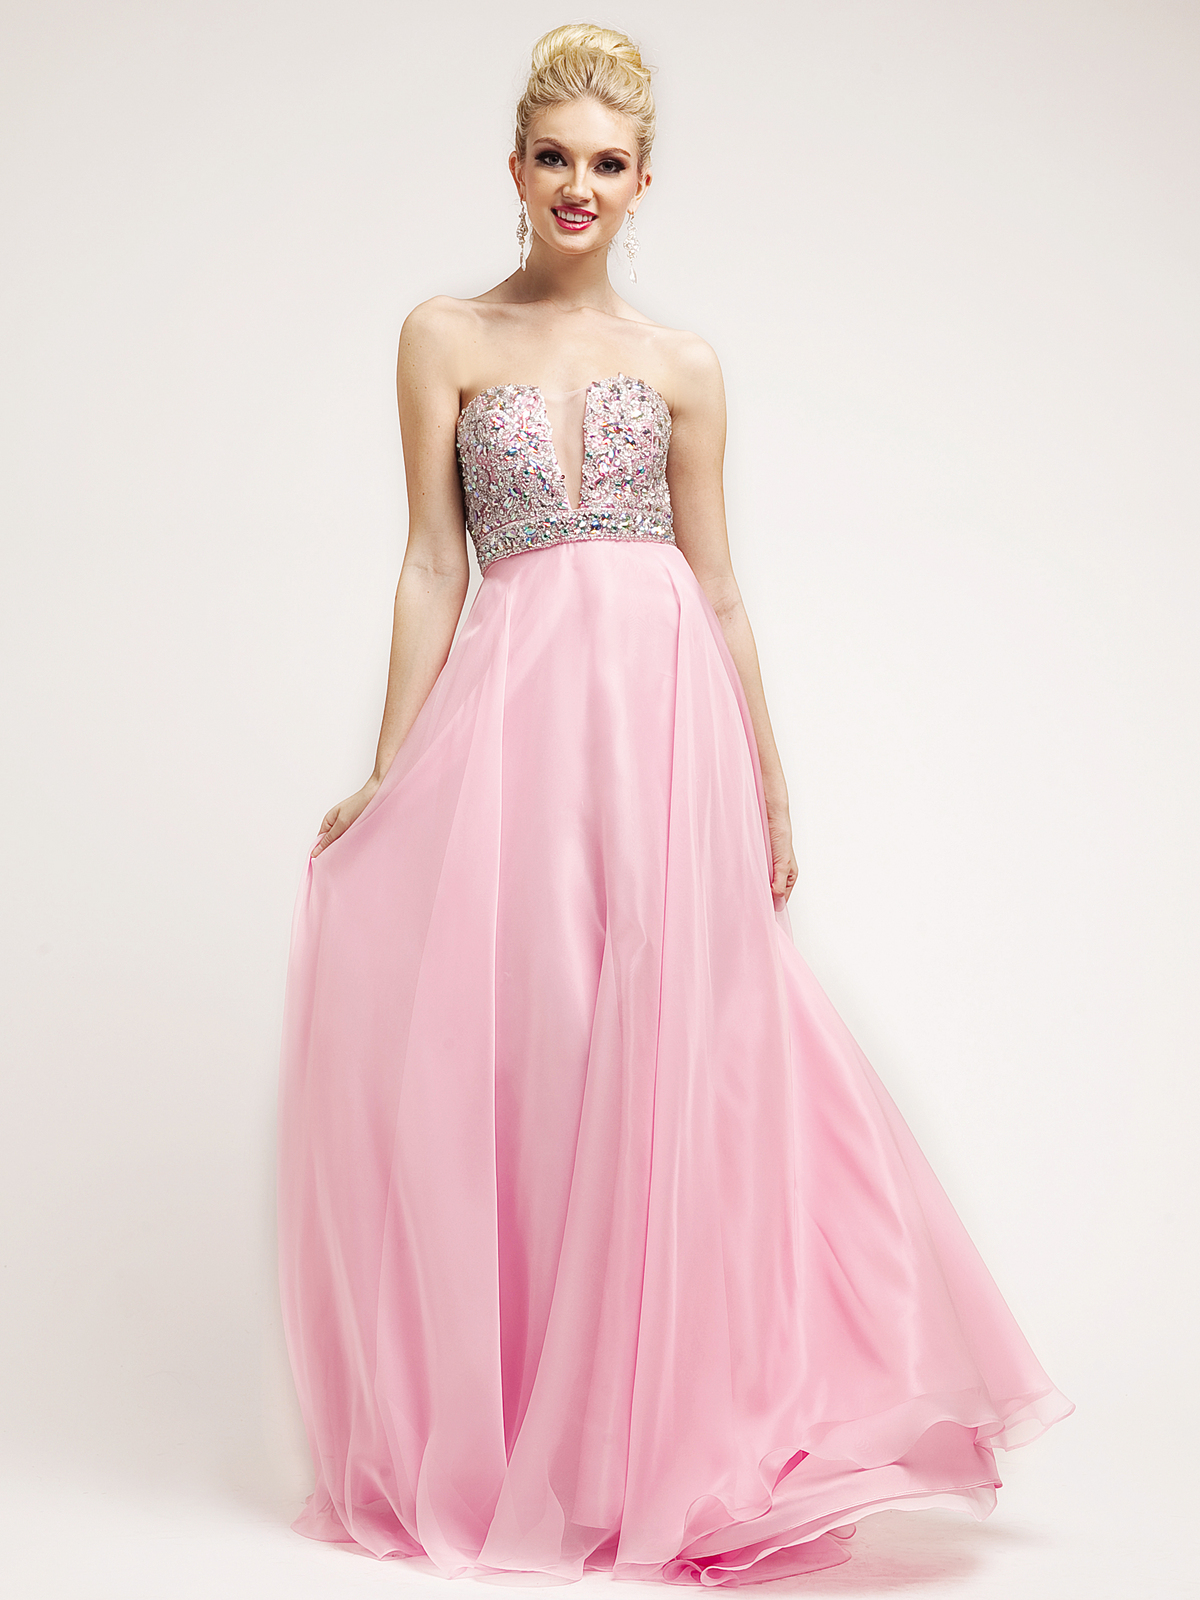 Baby Pink Beaded Deep V-Neckline Empire Waist Prom Dress - Sung ...